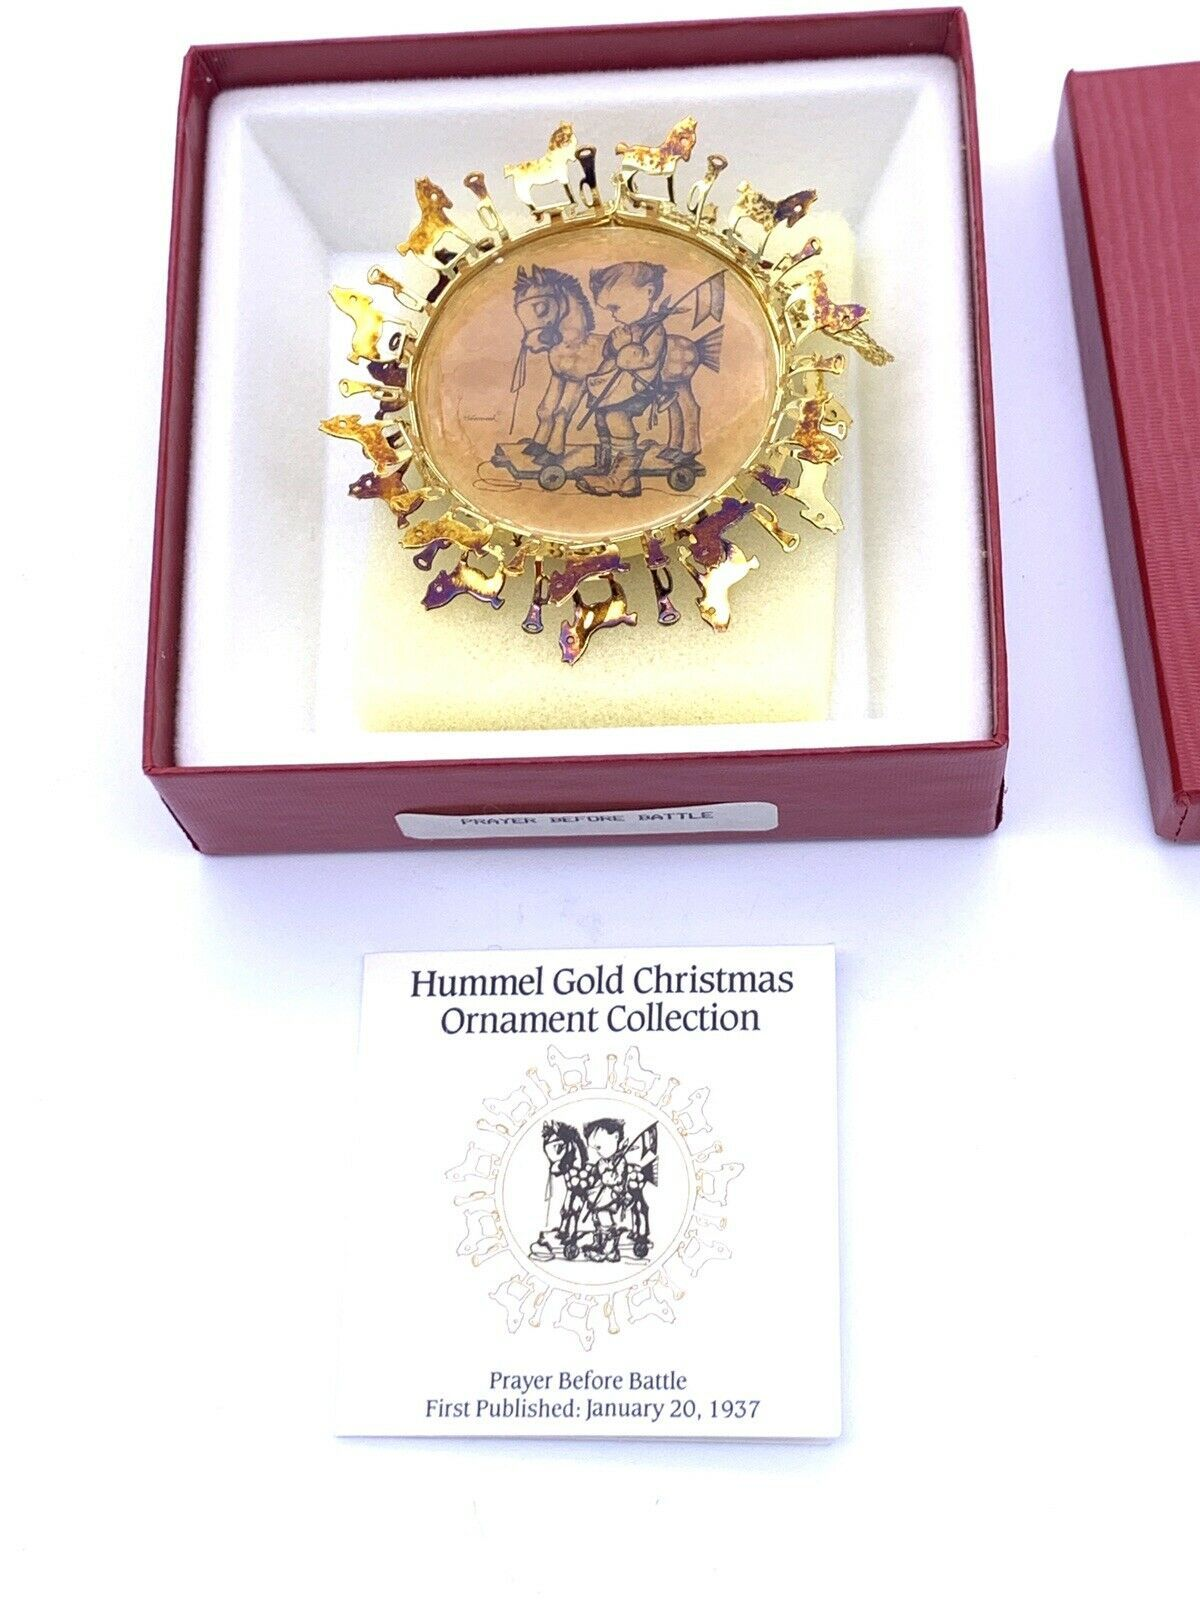 Hummel 24K Gold Christmas Ornament Collection Prayer Before Battle Original Box - $10.58